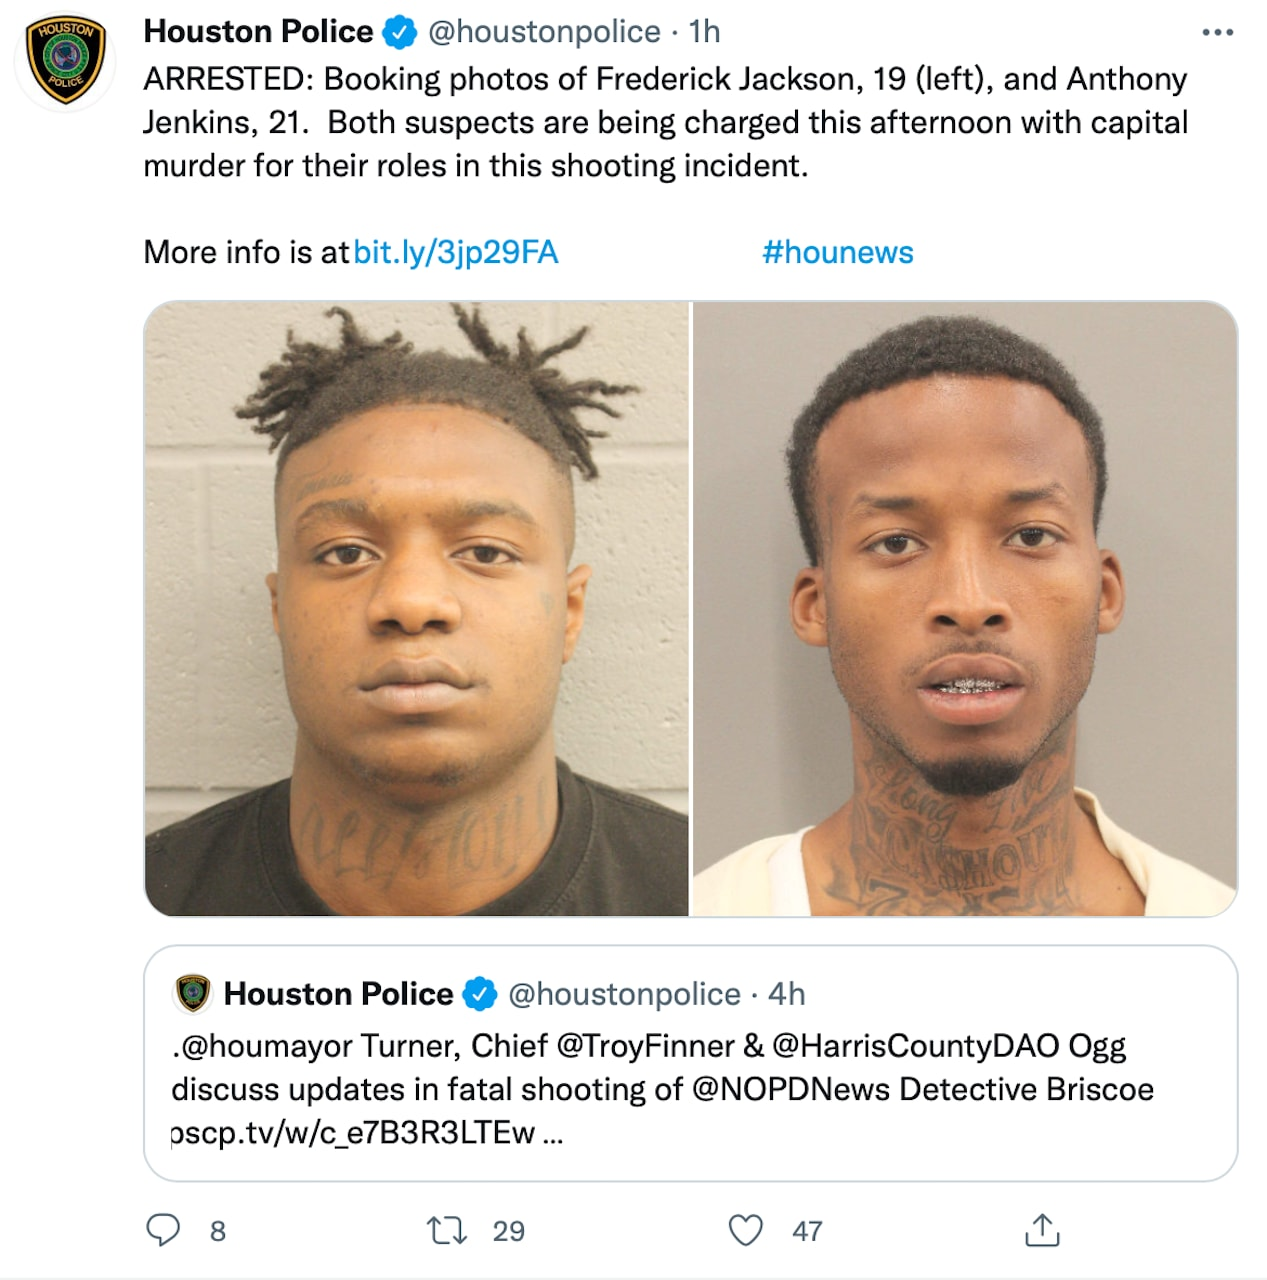 Harris County Prosecutor calls for severity in case